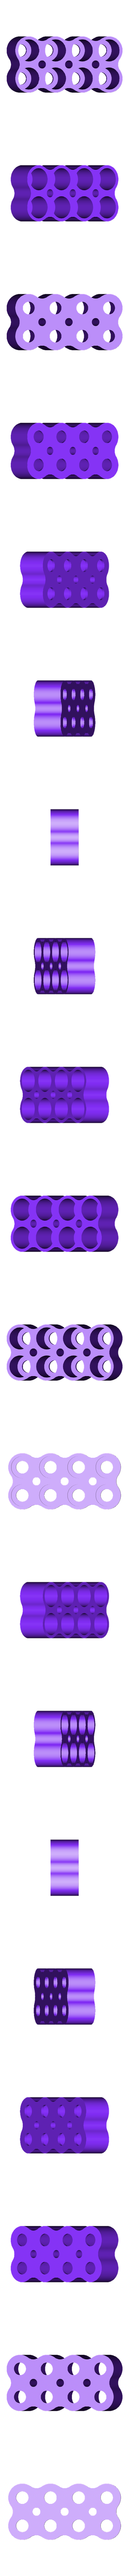 aaa_box_01.stl Download free STL file AA / AAA Battery Holder / Box • 3D print design, peaberry